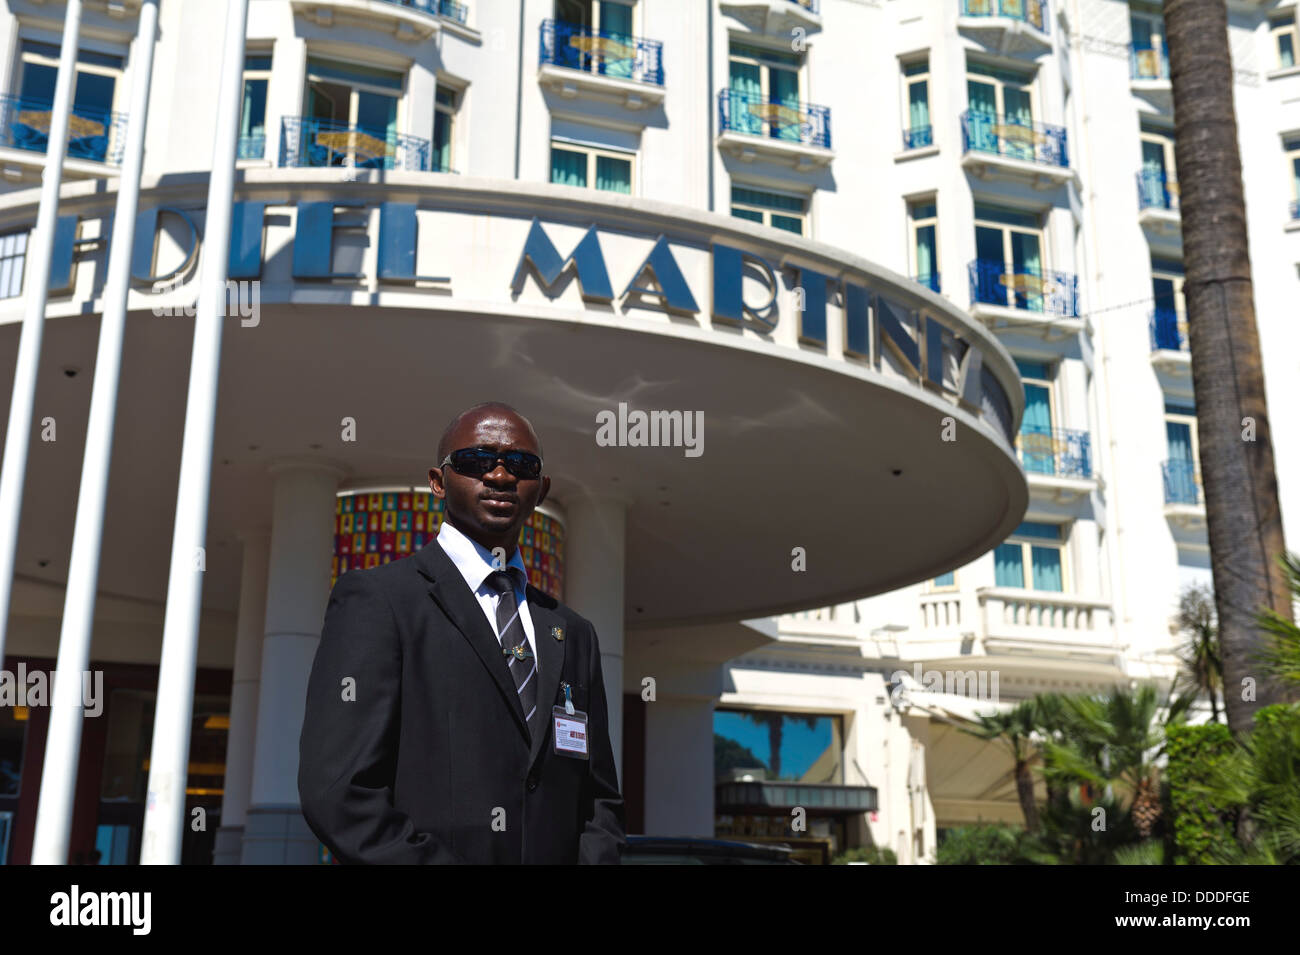 Europe, France, Alpes-Maritimes, Cannes Film Festival, a security guard at the Hotel Martinez during the film festival. - Stock Image